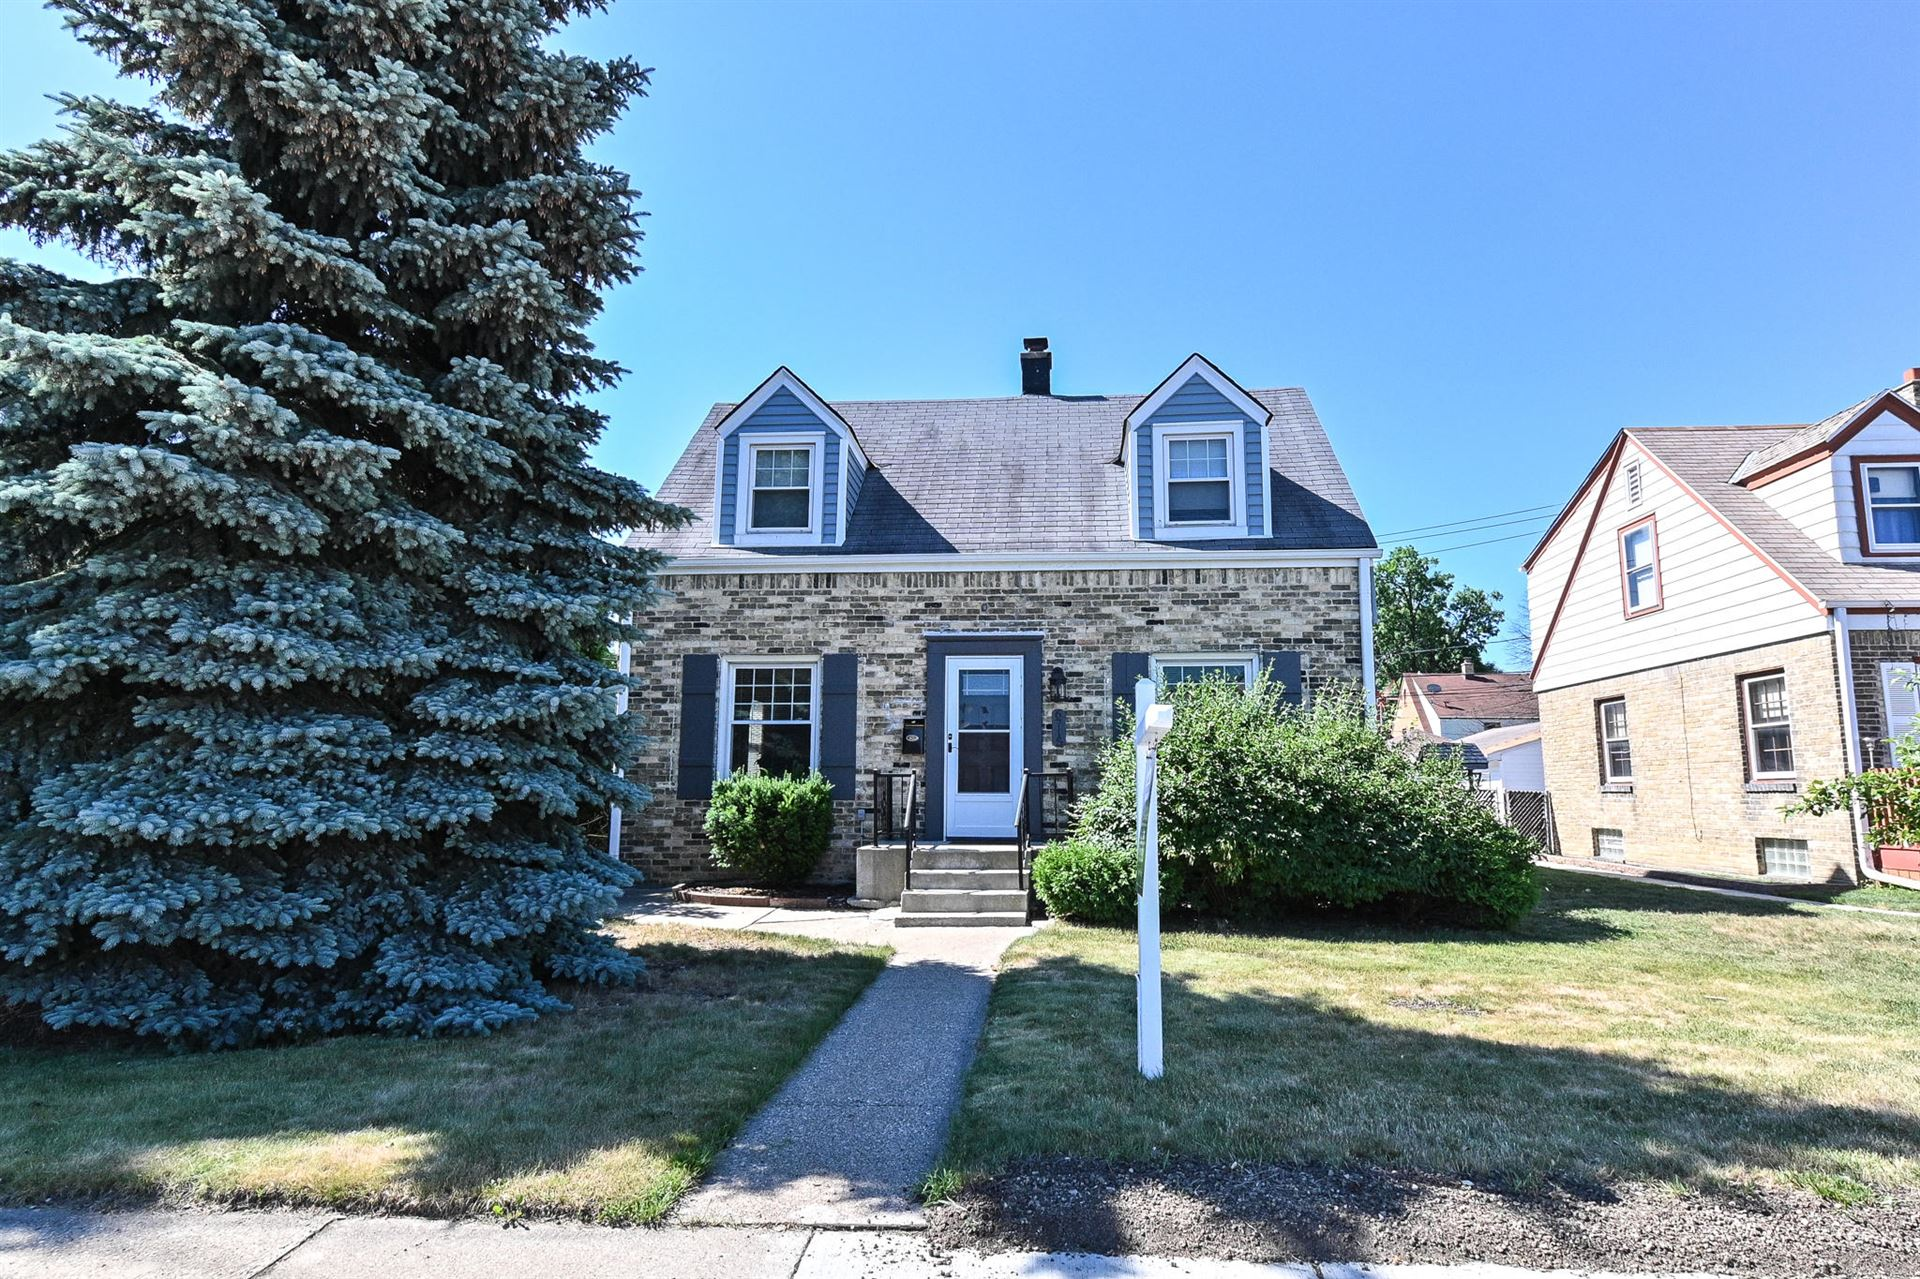 6715 W Lincoln Ave, West Allis, WI 53219 - MLS#: 1744862